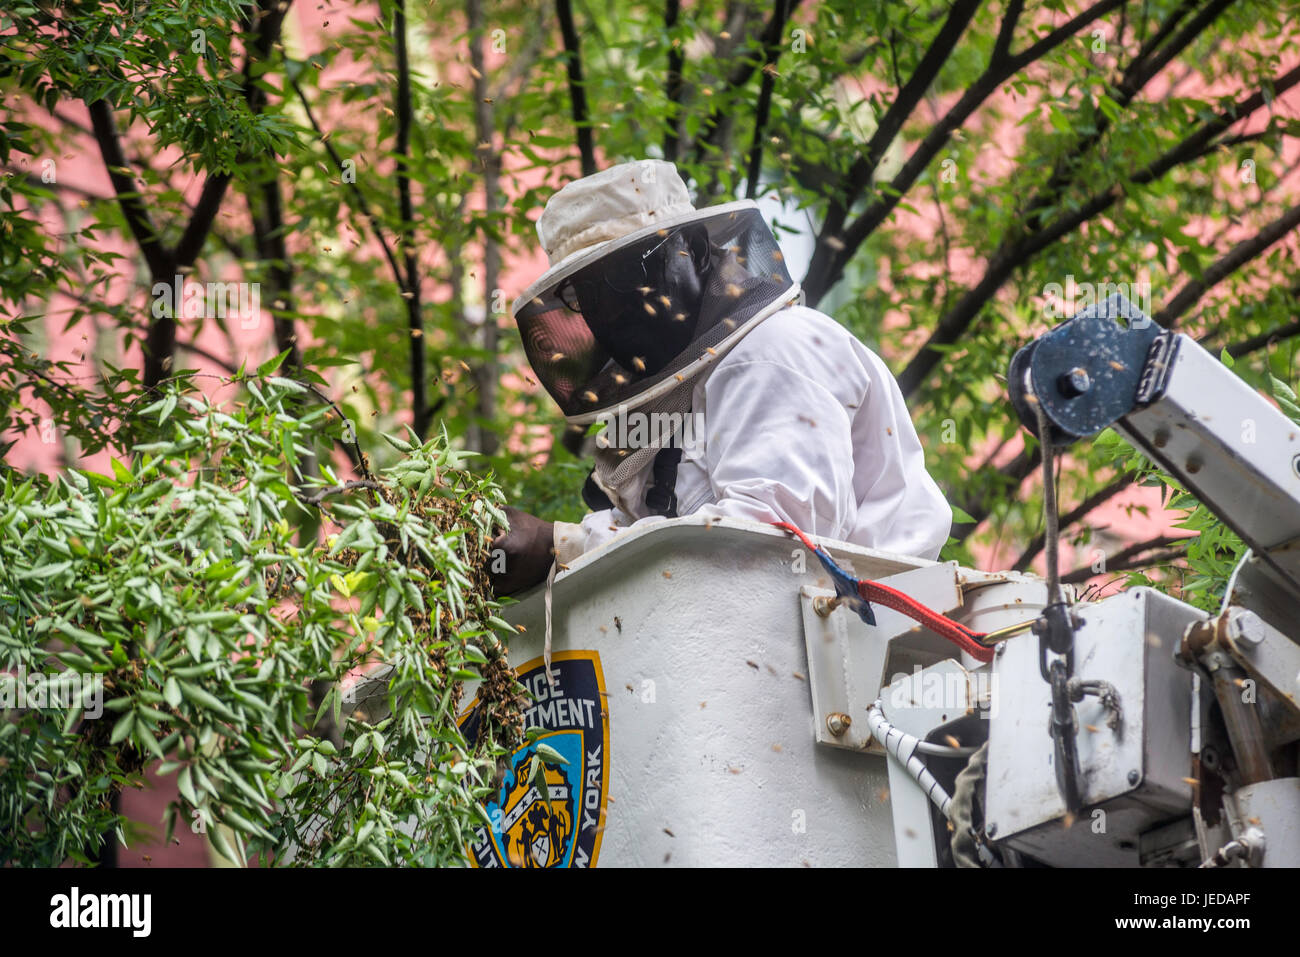 New York, NY 21 June 2017 - A Beekeeper and member of the NYPD Emergency Services Unit, removes two bee hives from - Stock Image